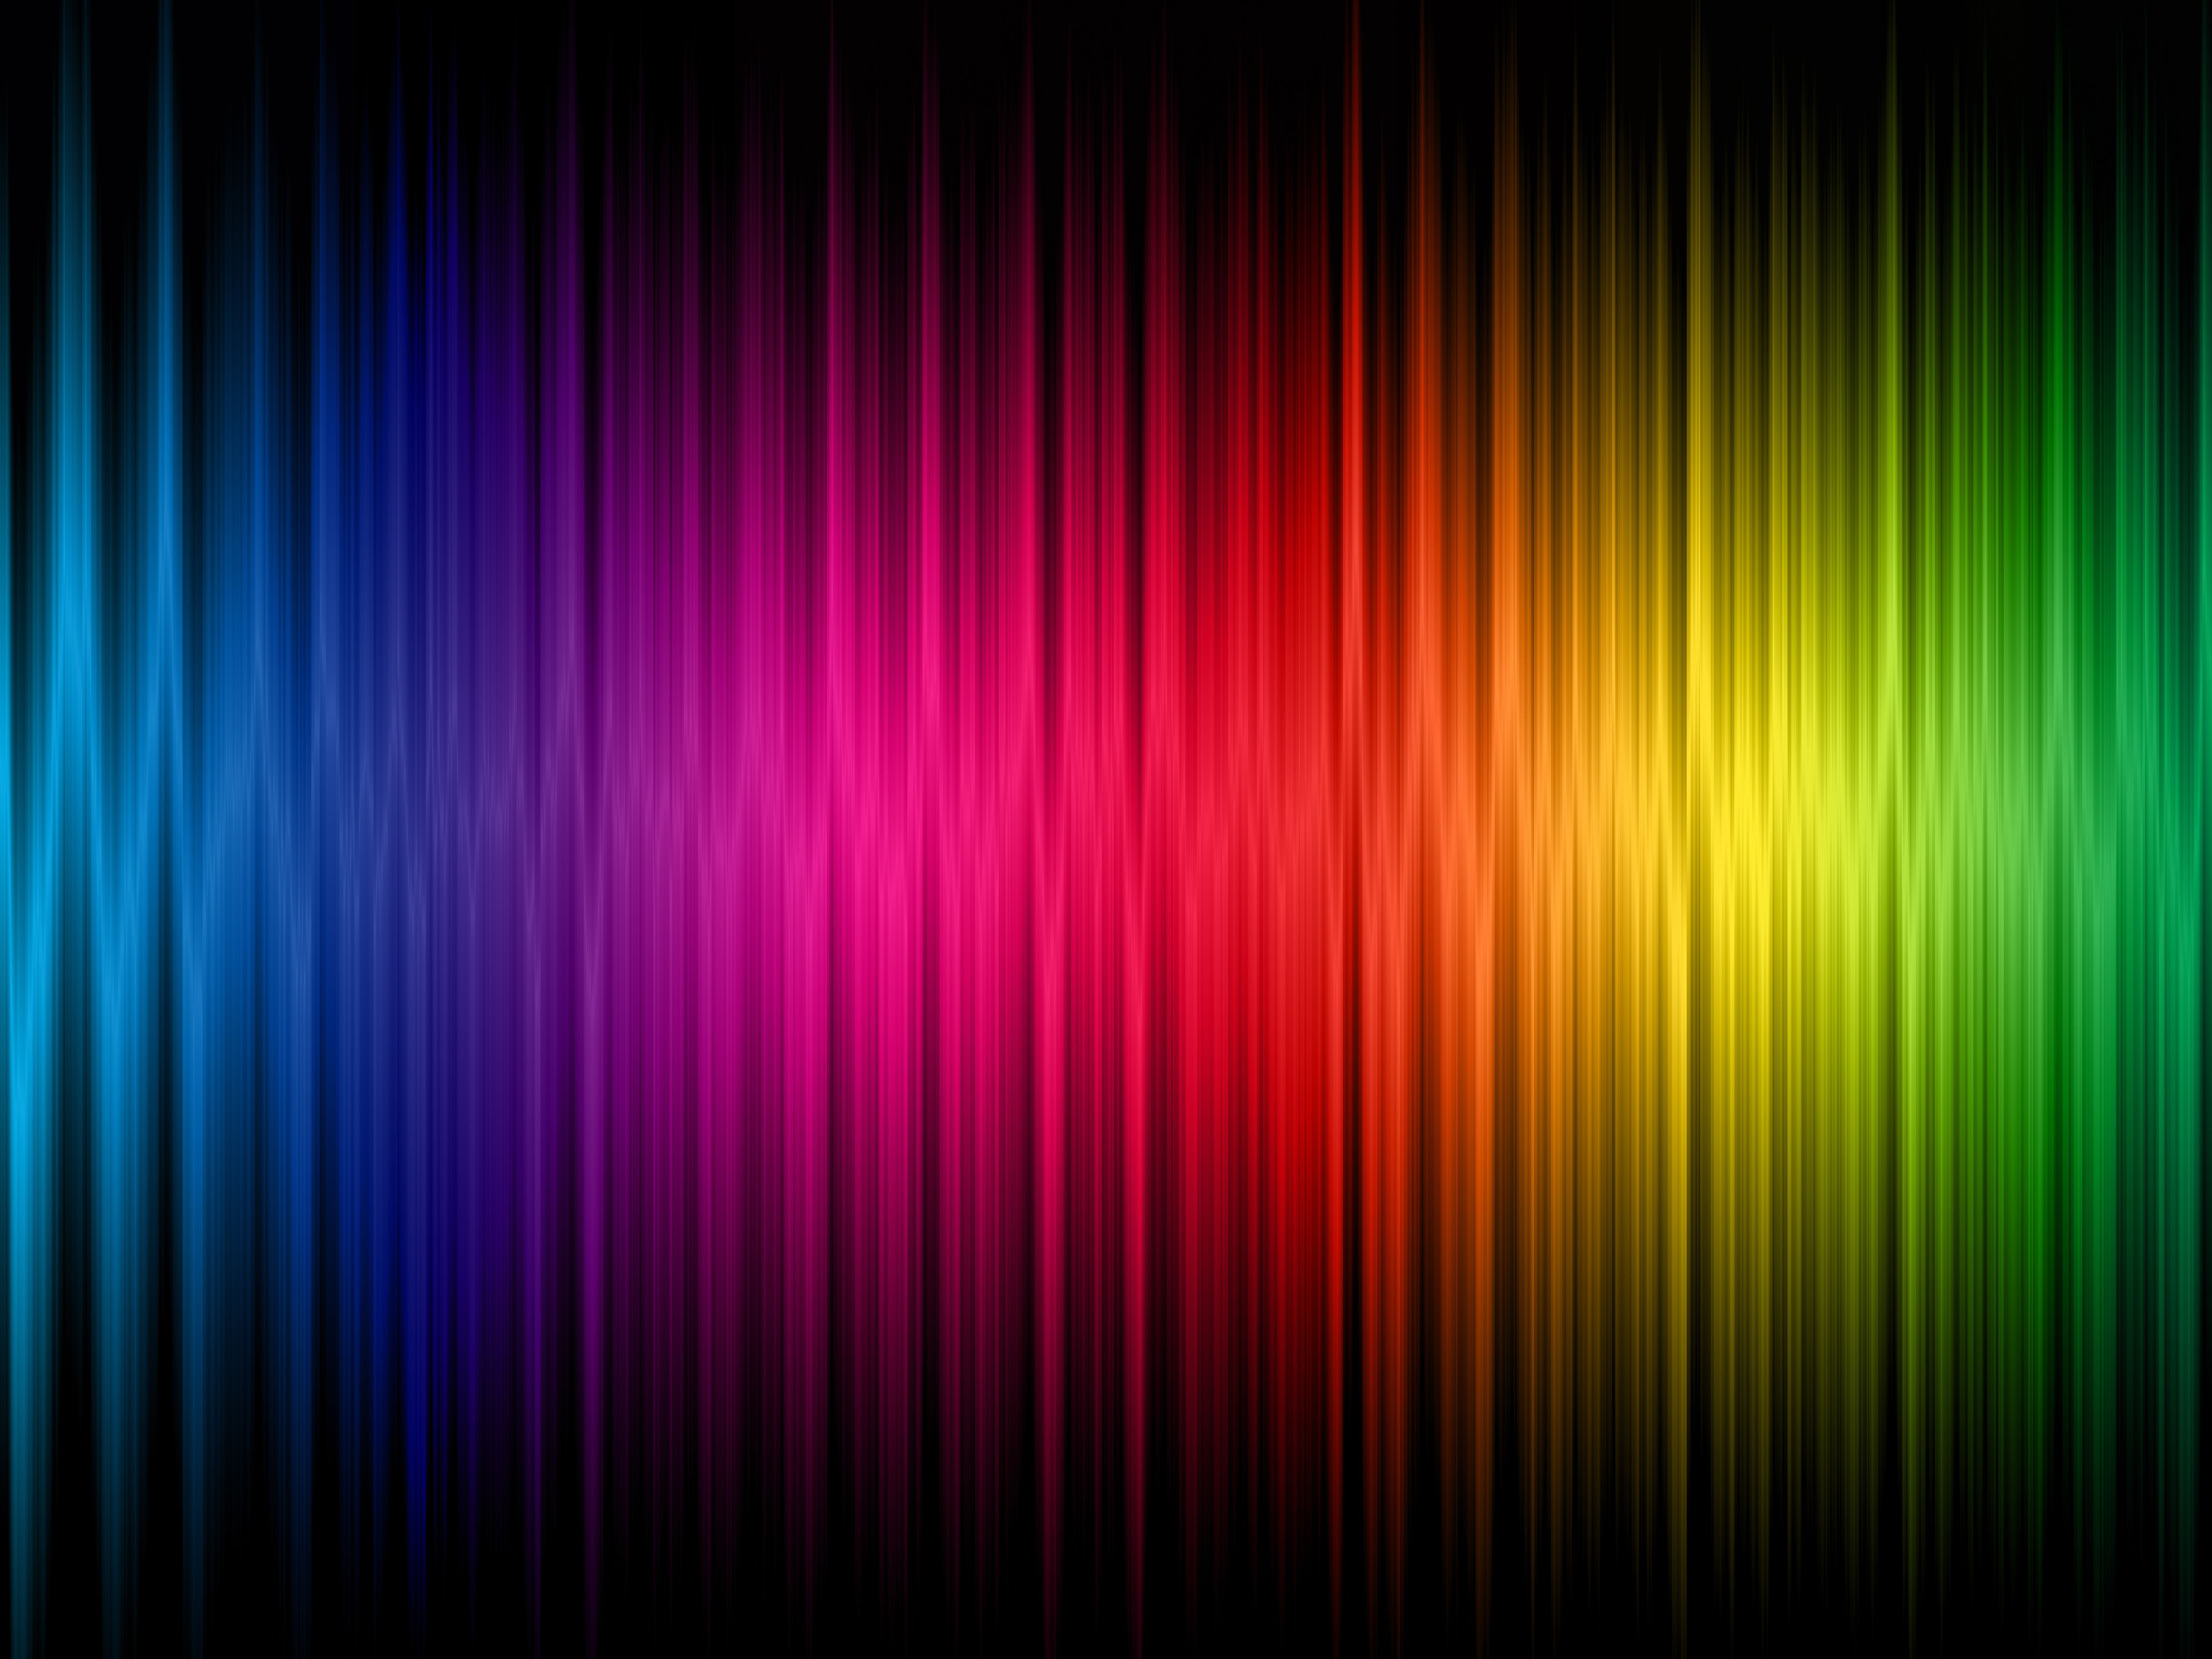 Wavelengths and Colors of the Visible Spectrum